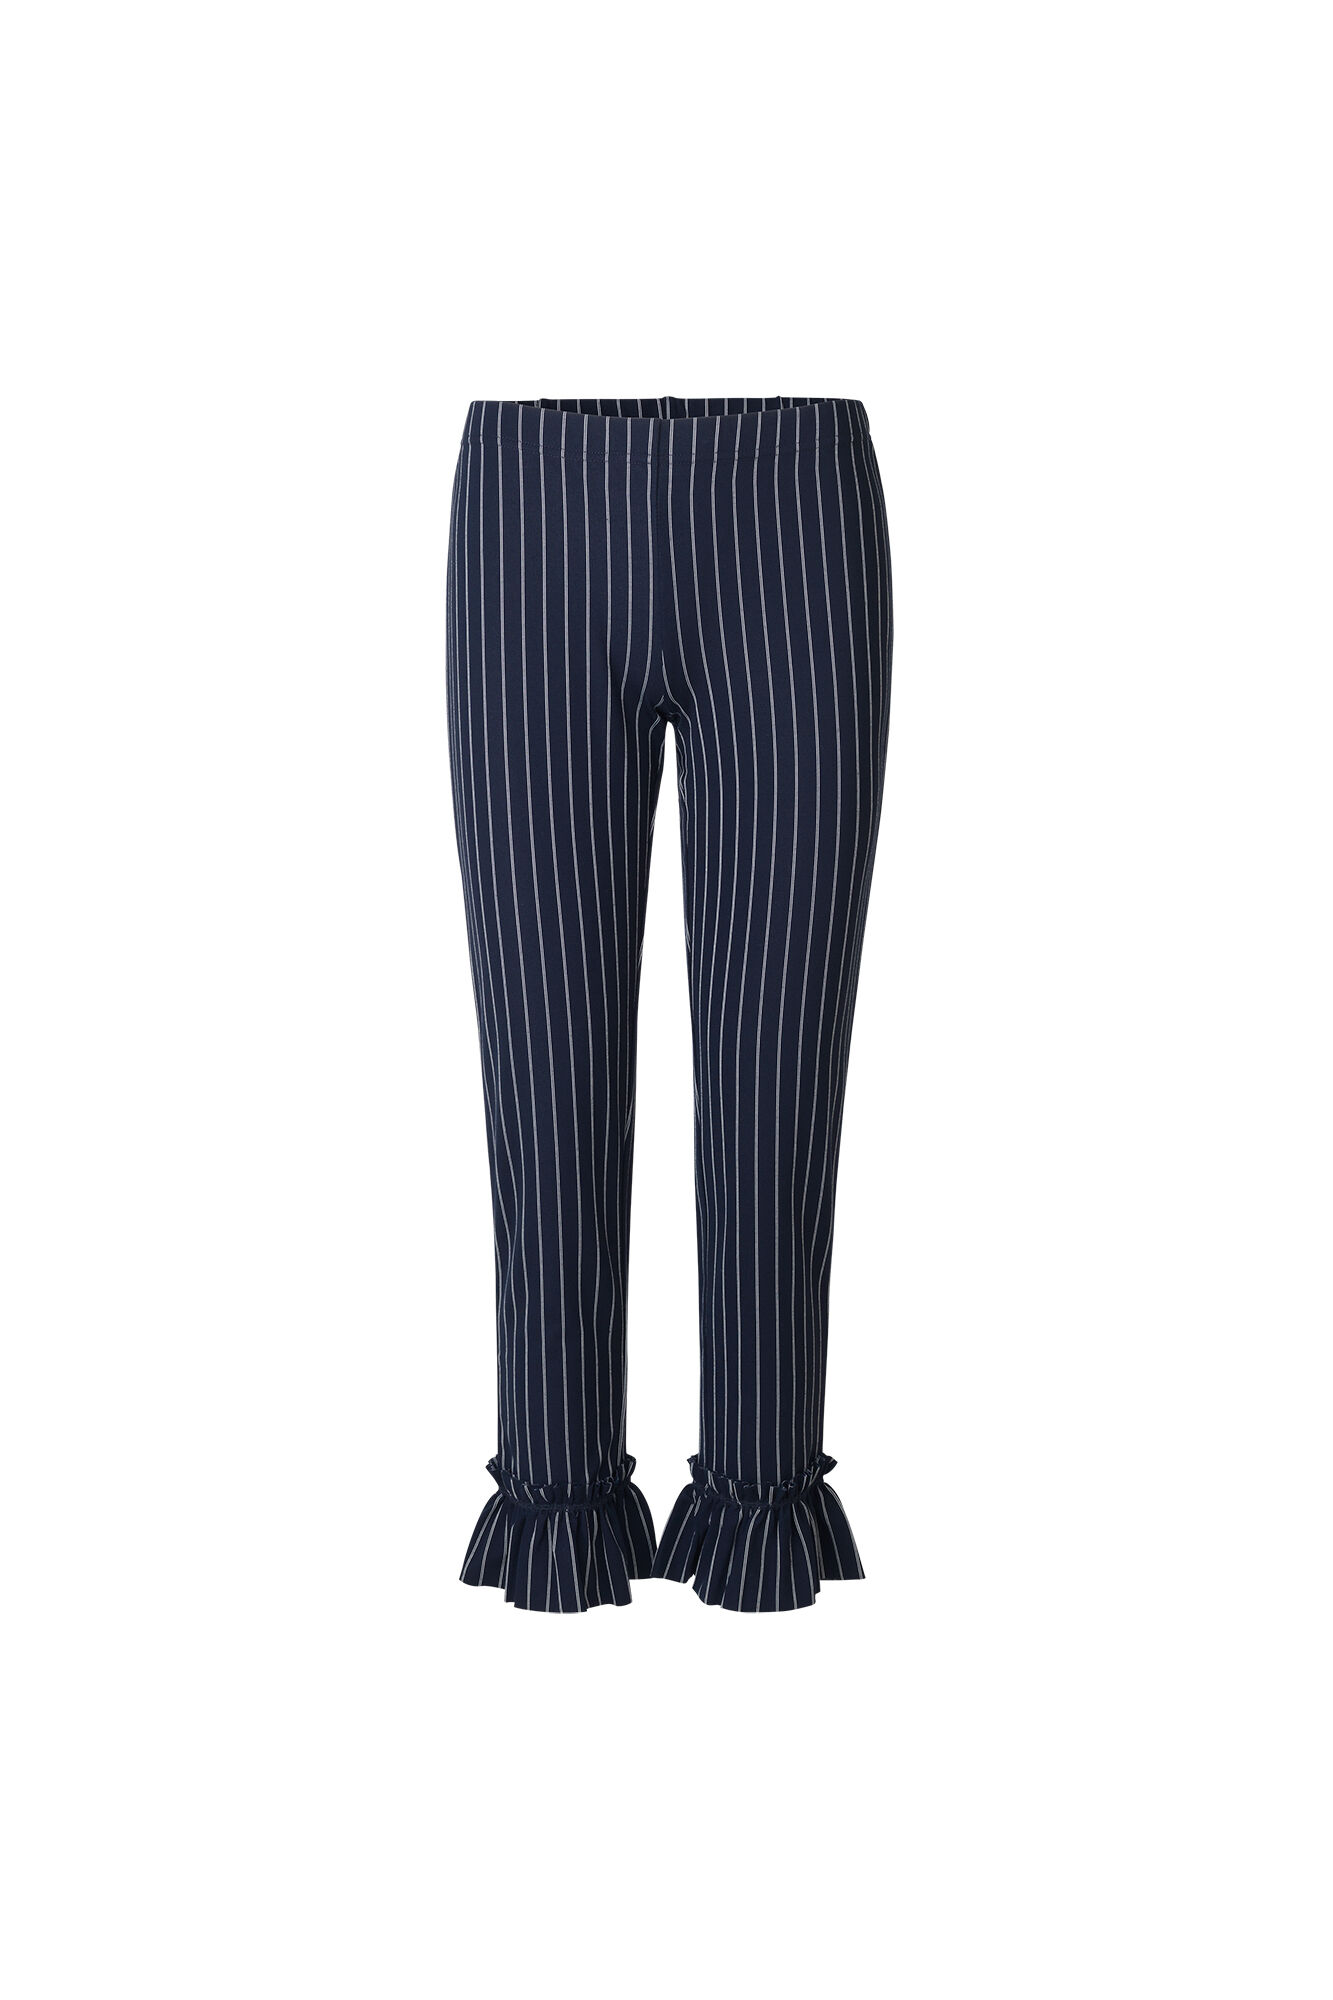 ENTOFFEE PANTS 5957, NAVY PINSTRIPE